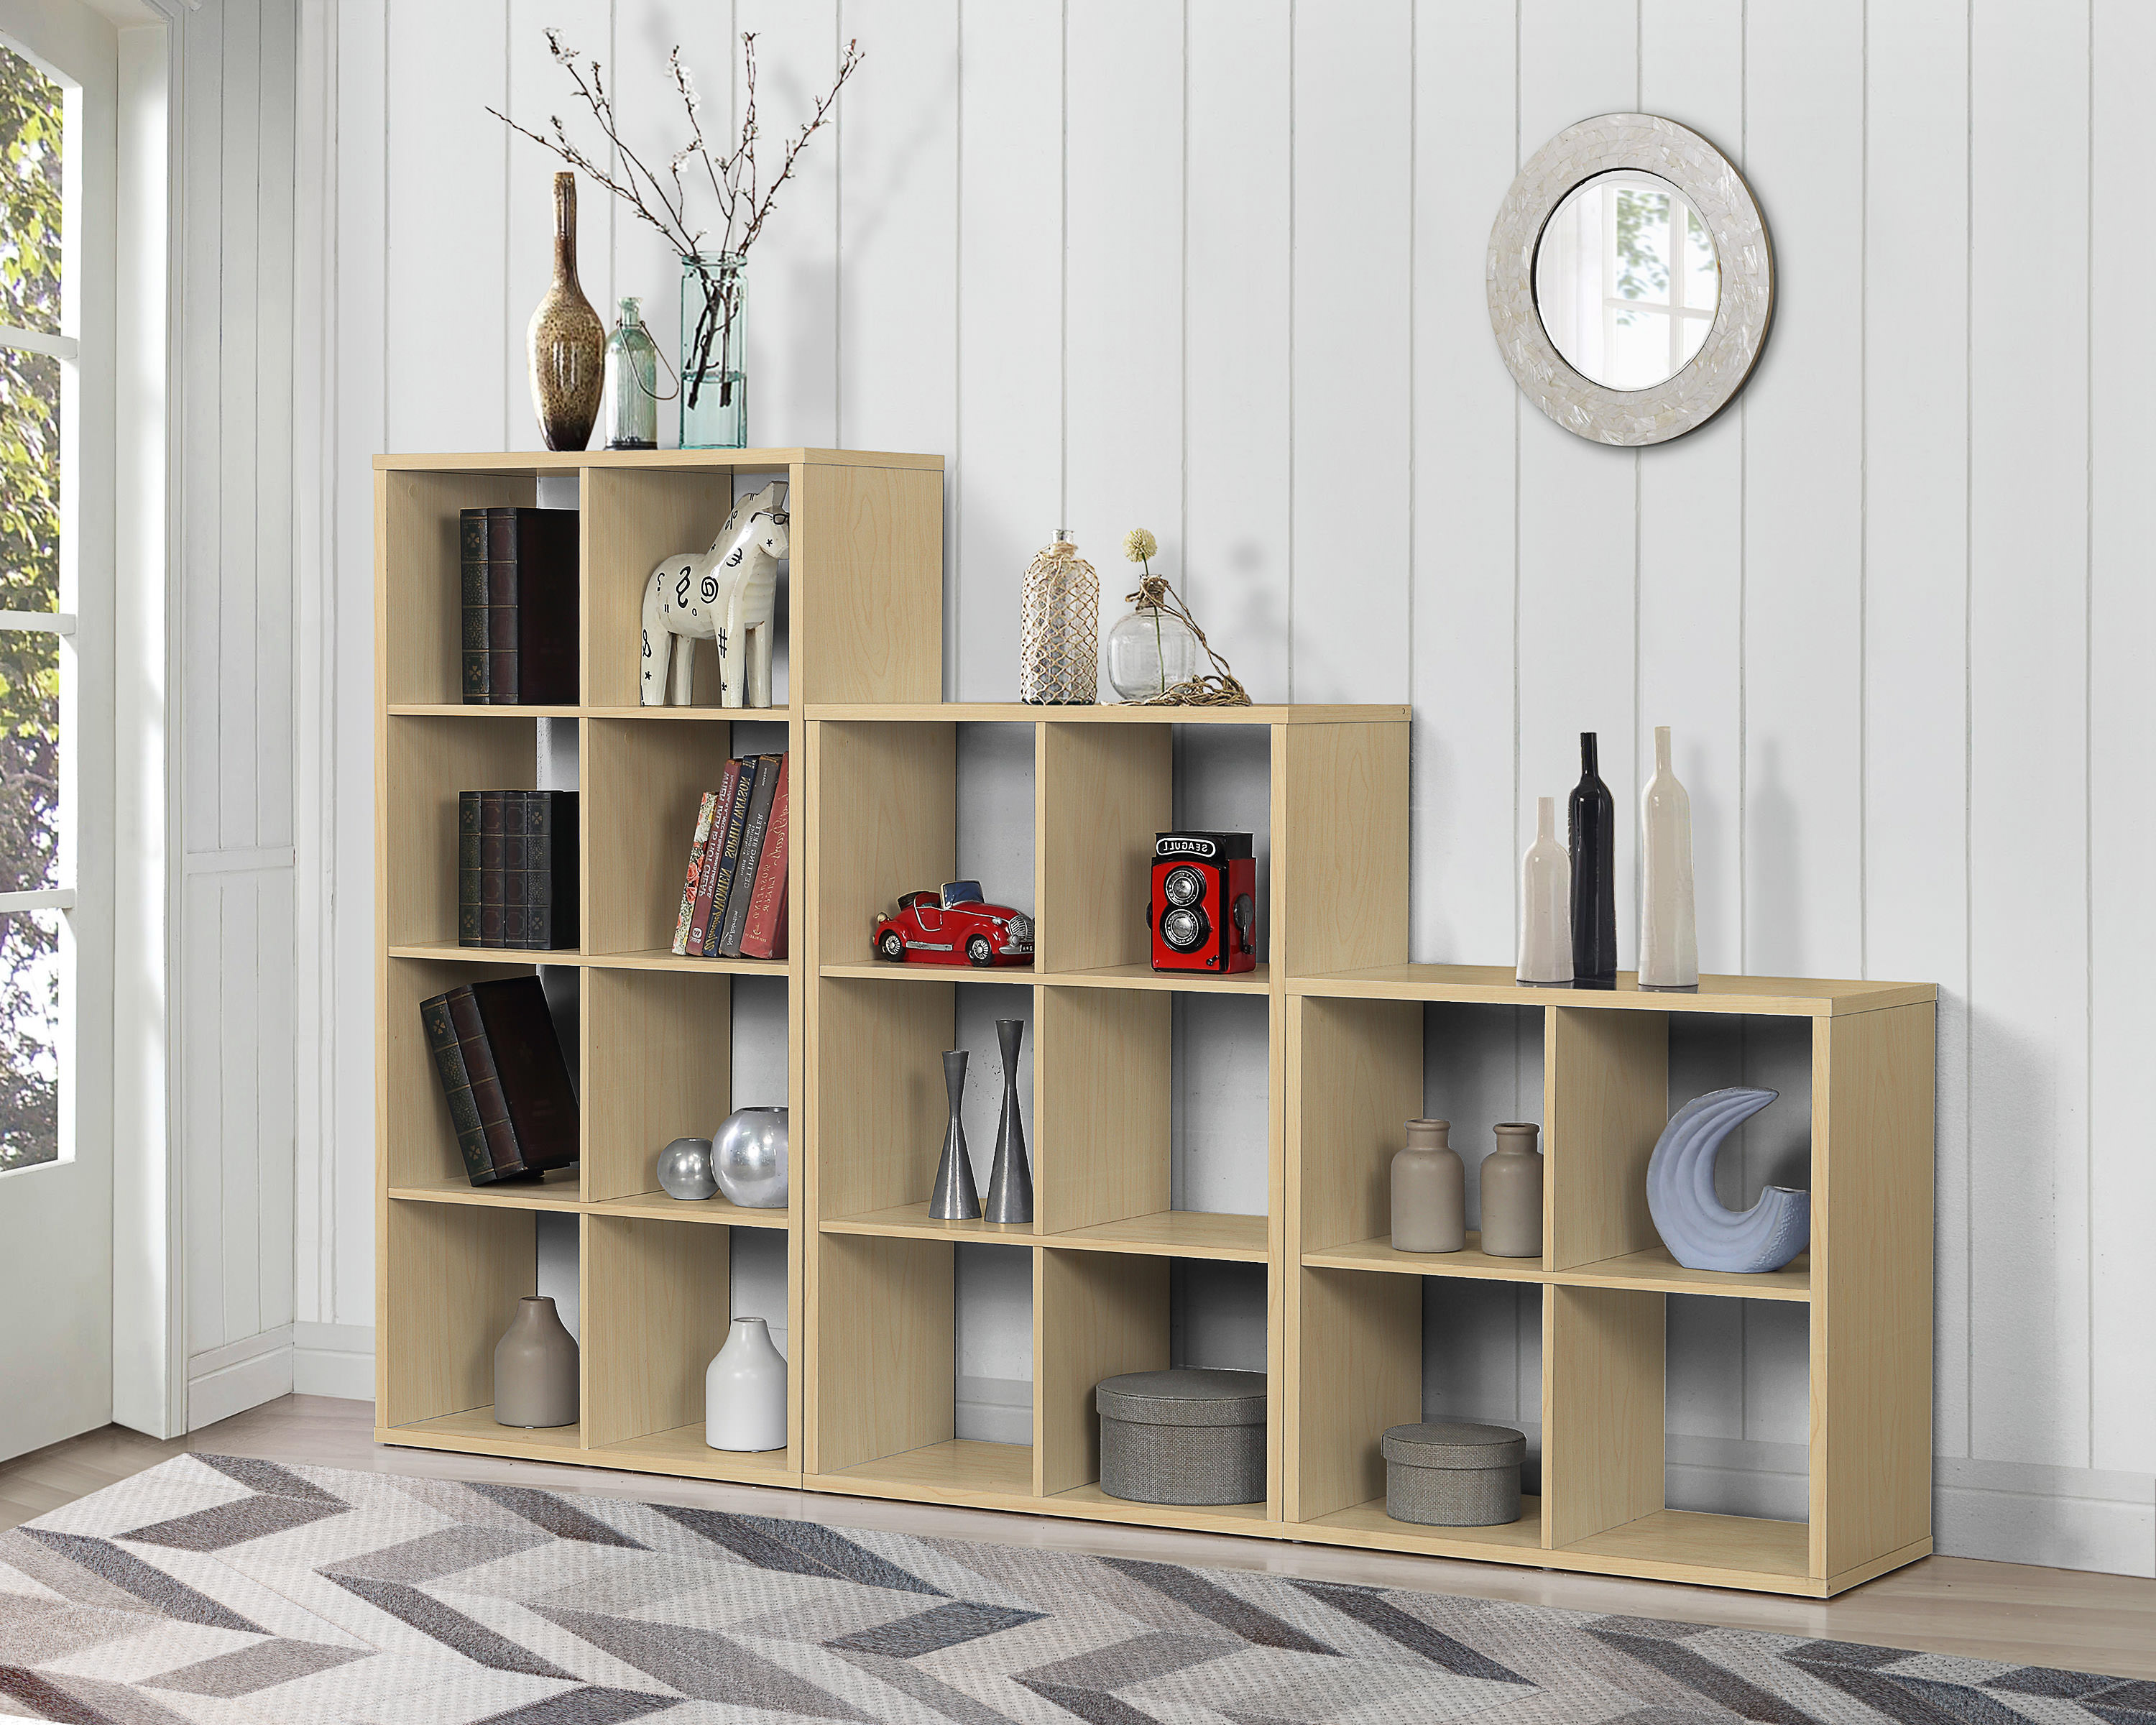 Description Beech finish display shelving unit with 9 shelves. This storage shelf or box cube room ider has a beech finish and would fit well in any ... & Beech Finish Storage Shelf Room Divider Shelves Display 9 Cube ...